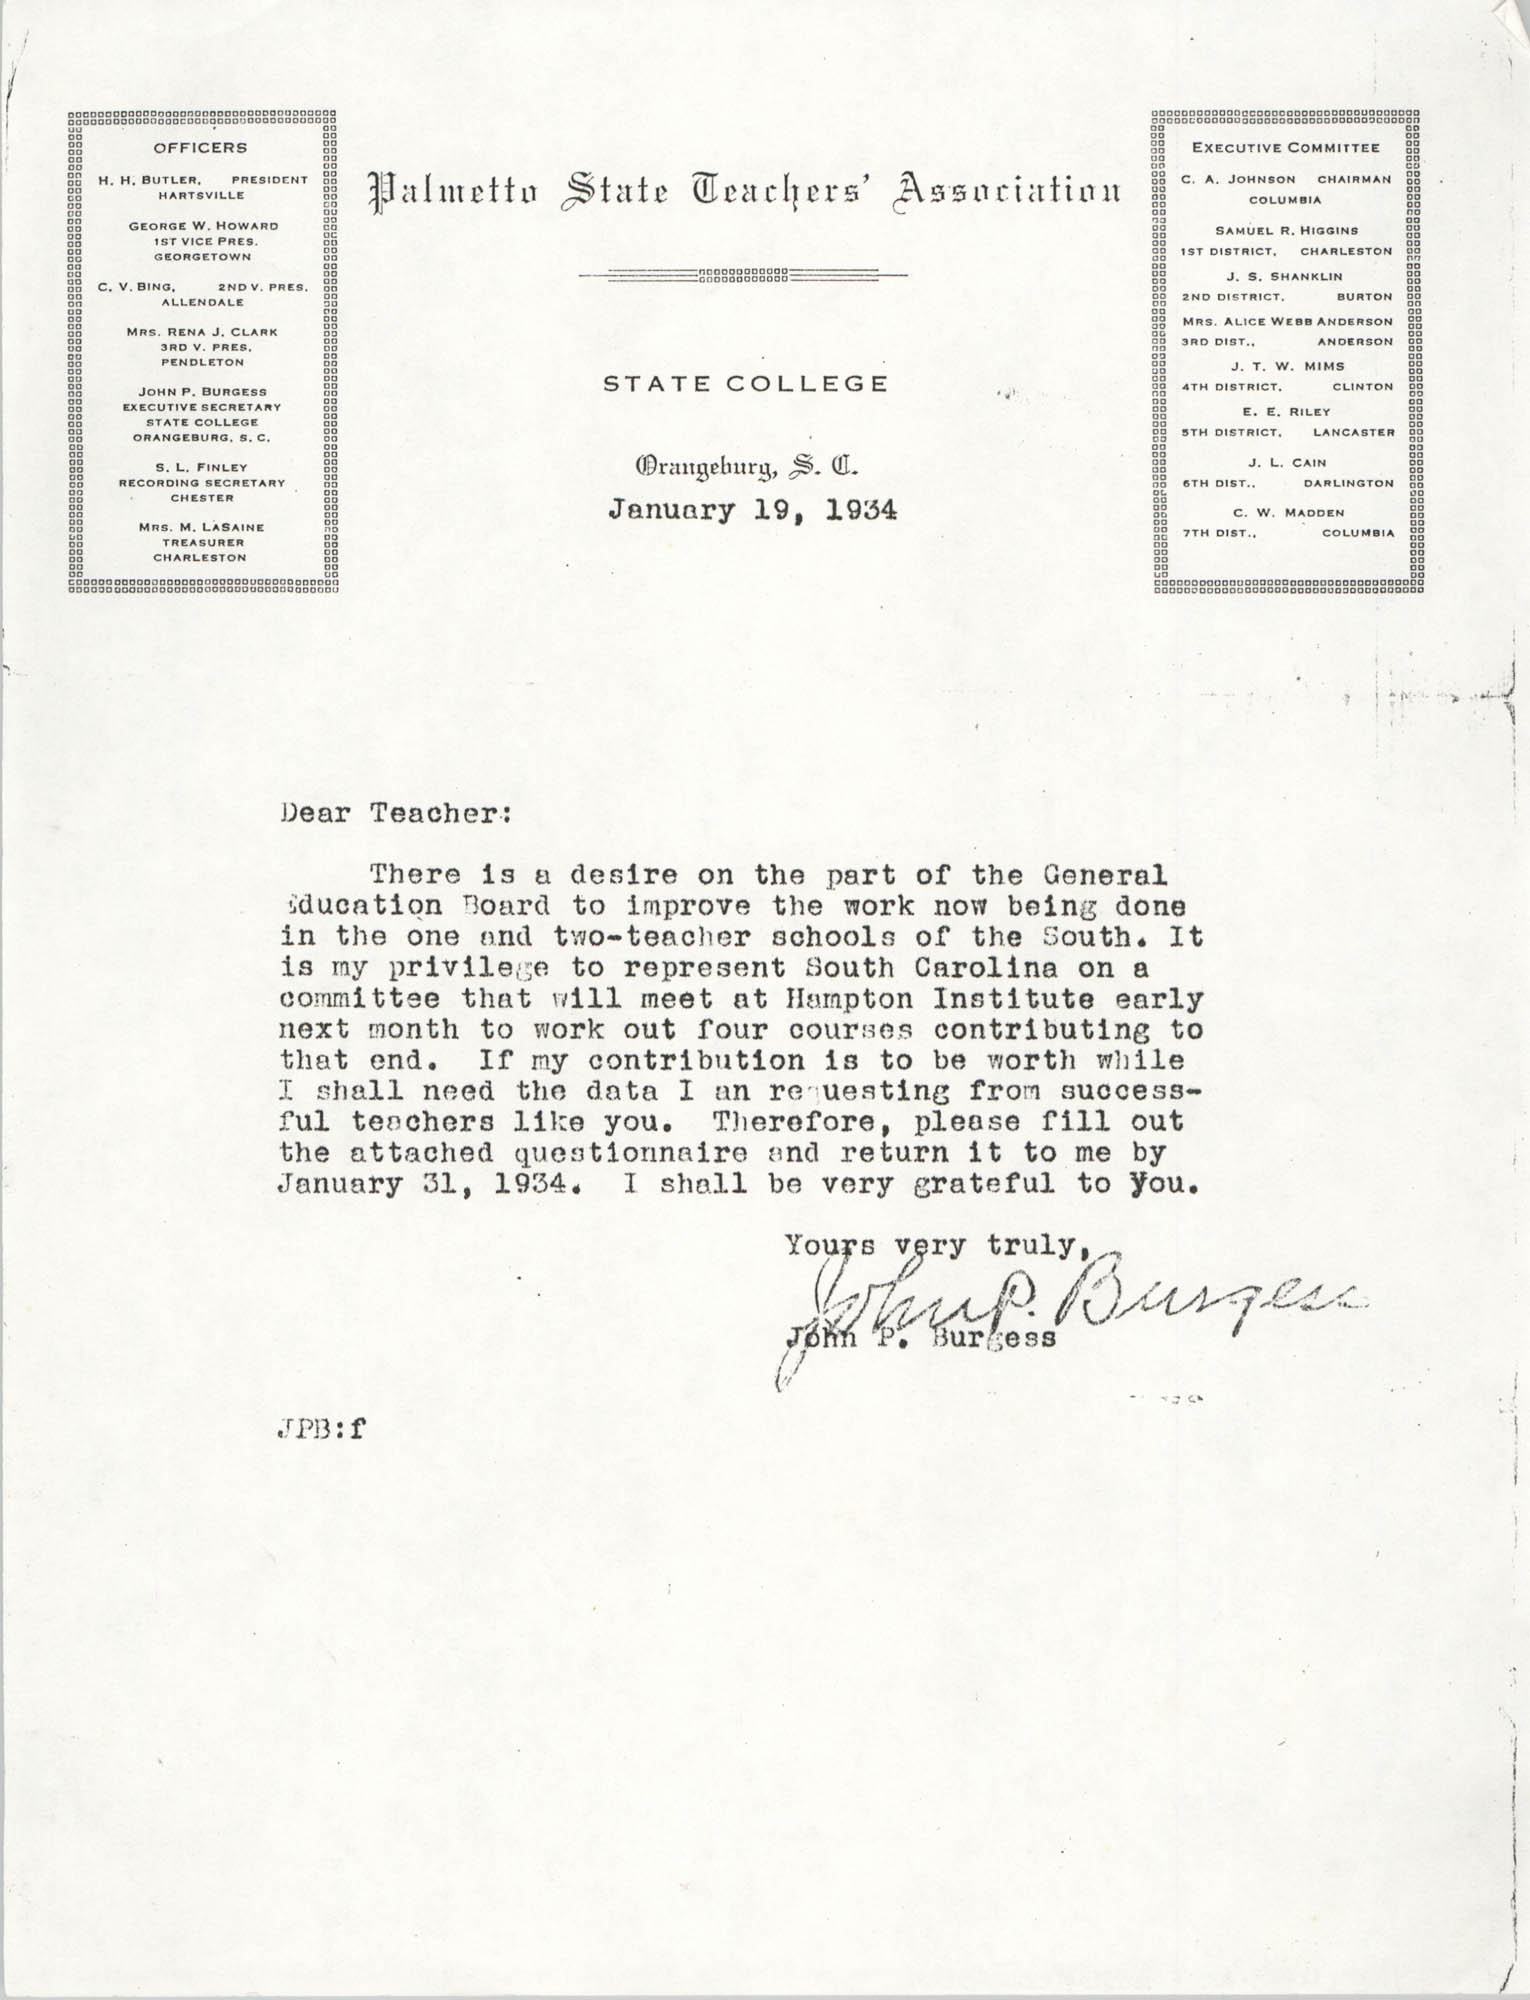 Letter from John P. Burgess, January 19, 1934